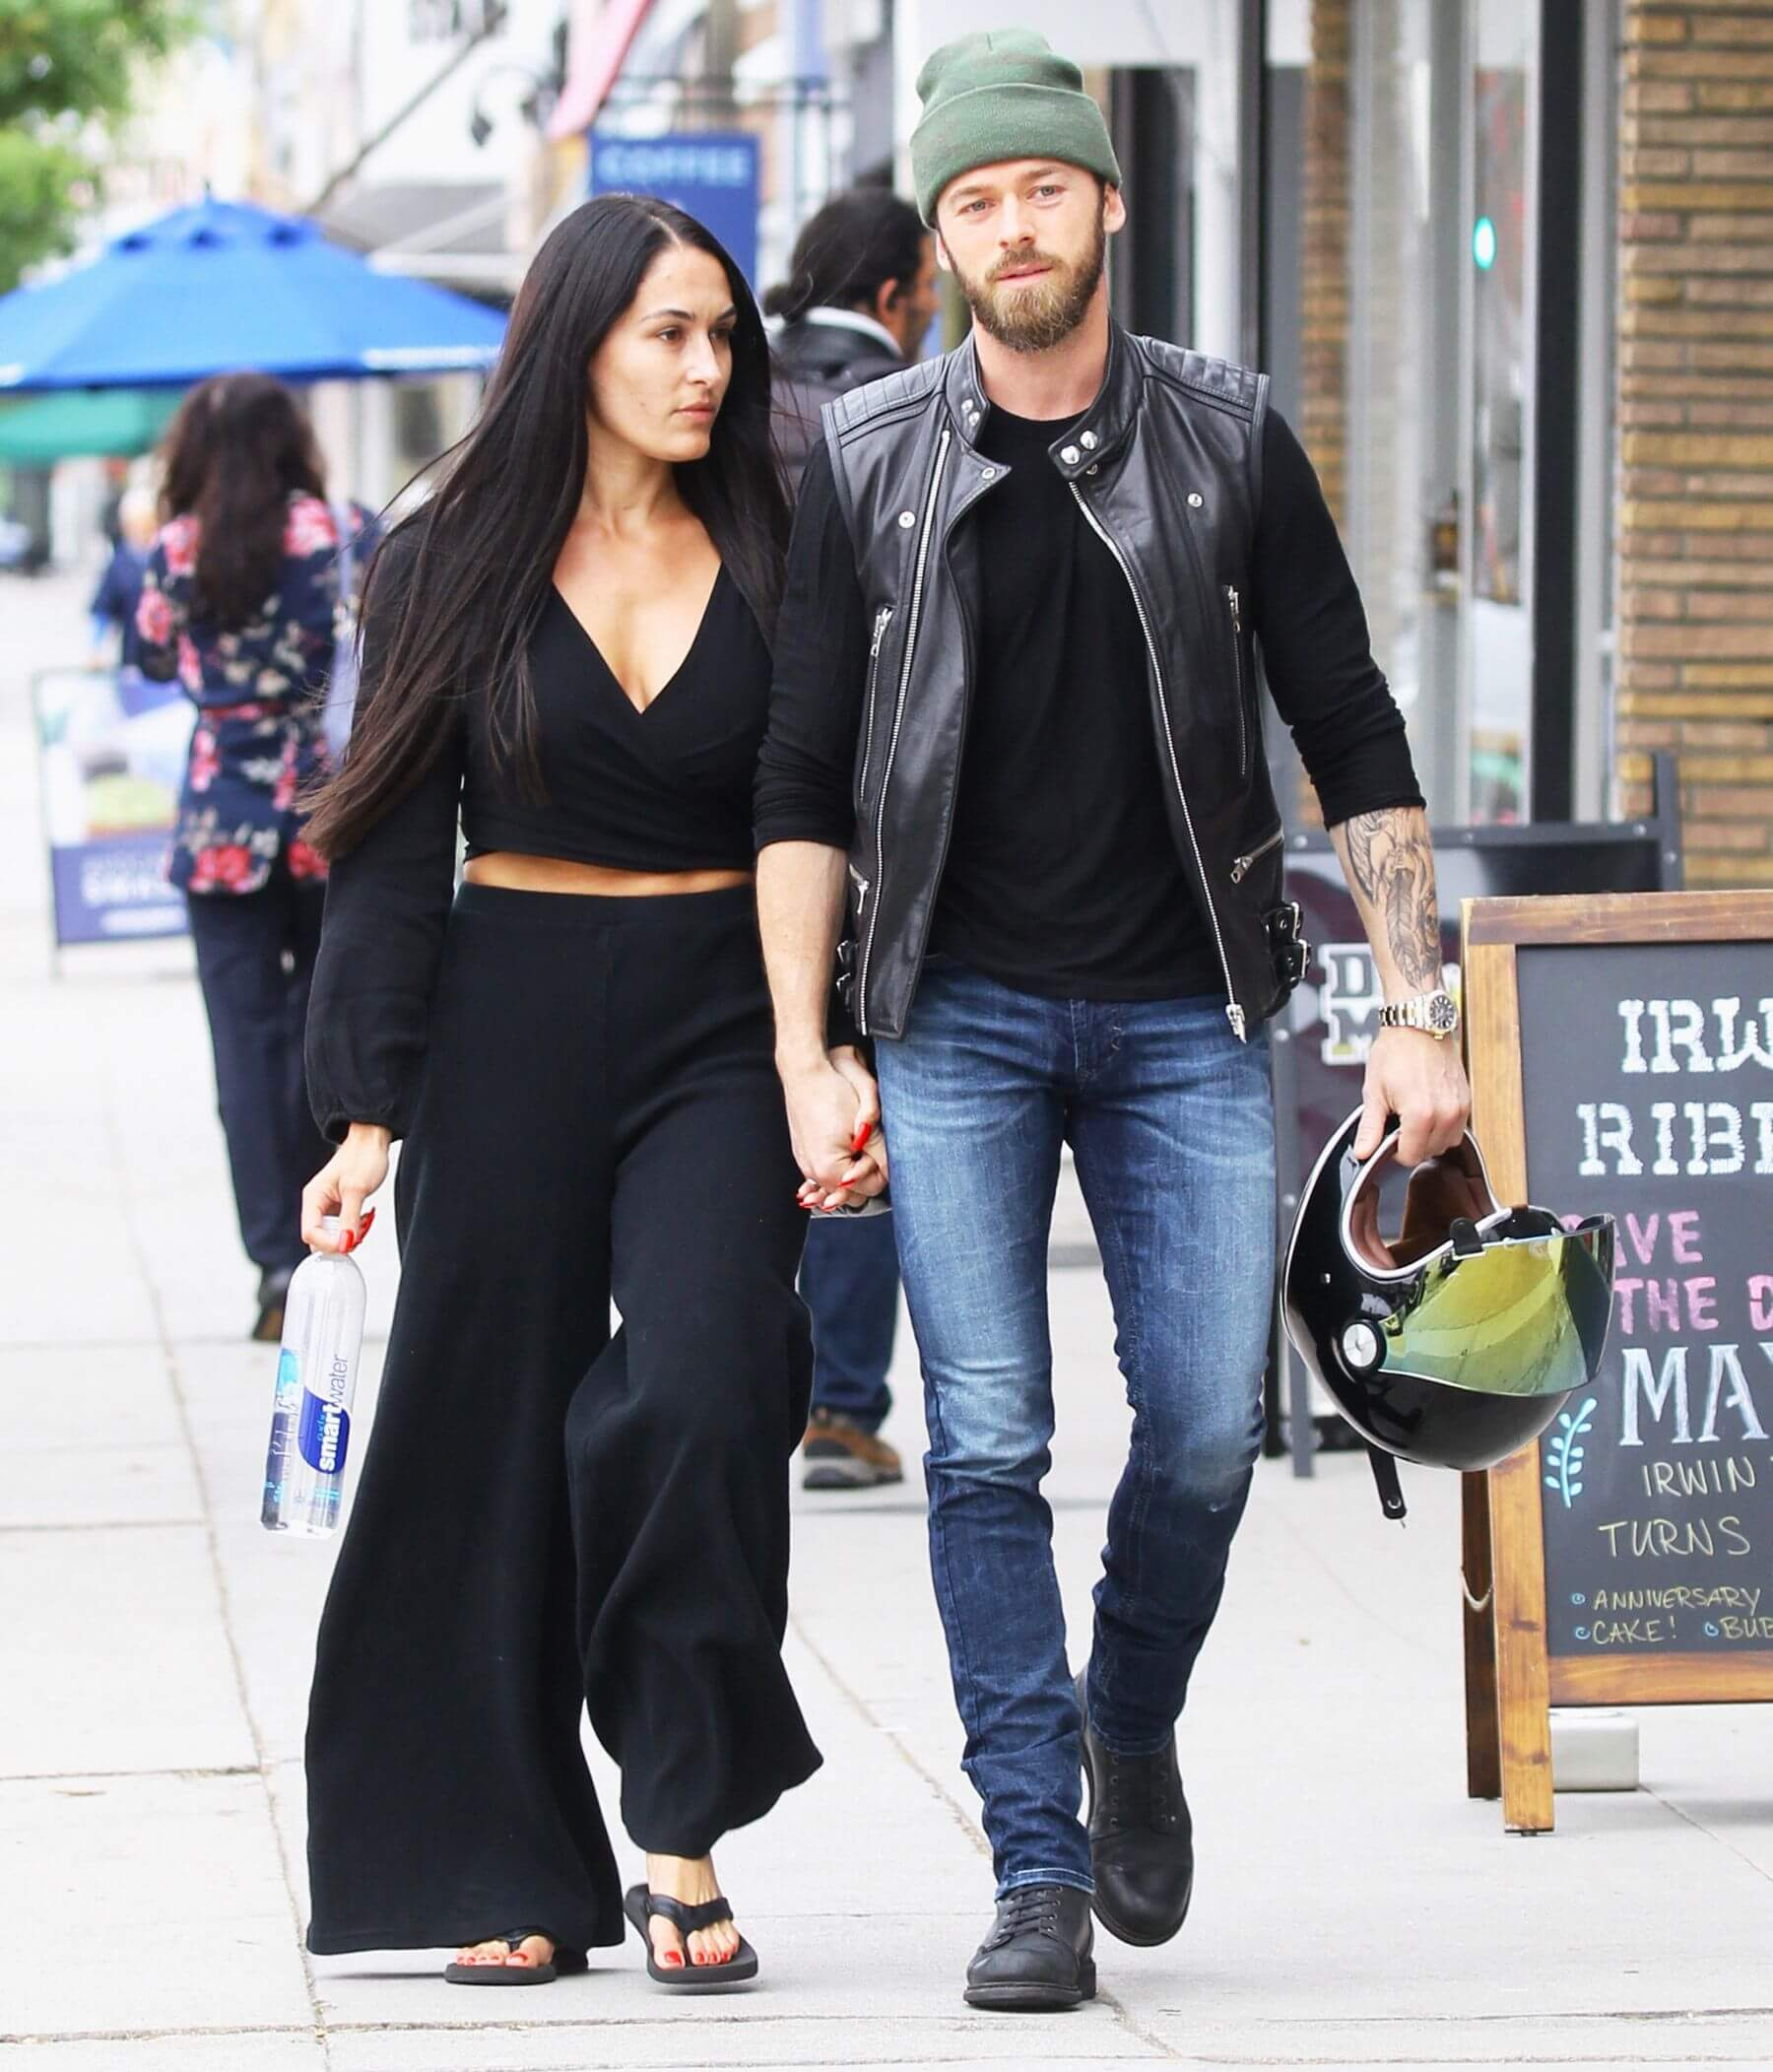 Nikki and Artem taking a stroll